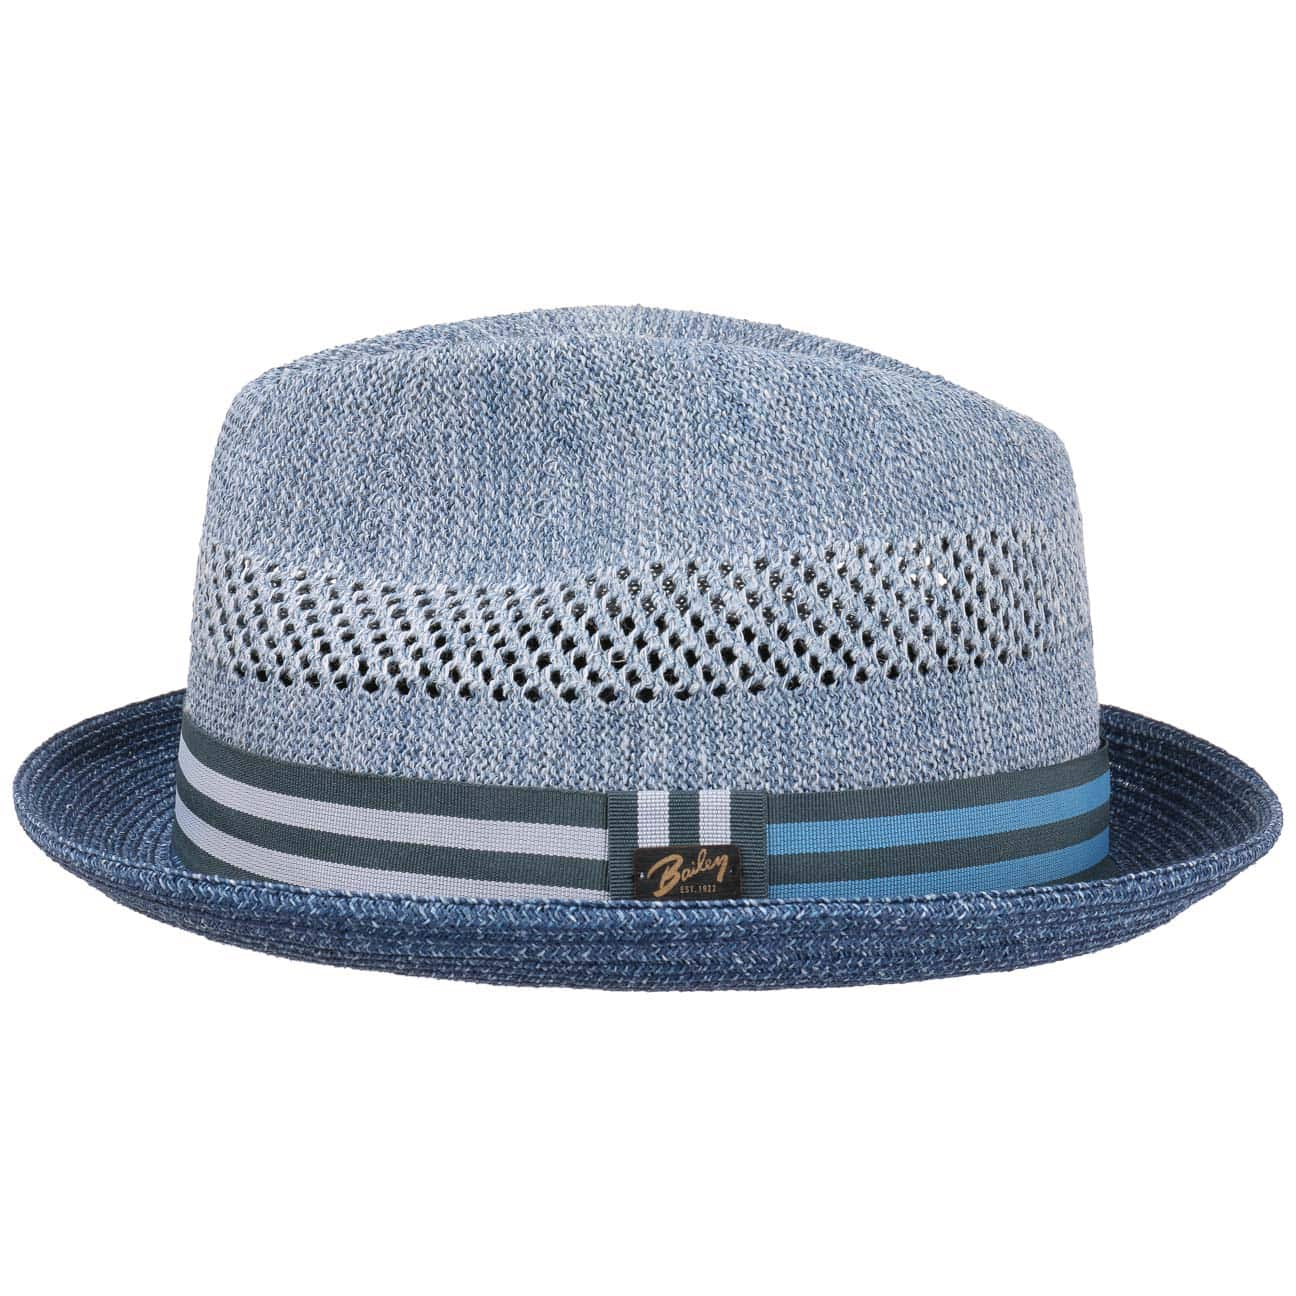 Sombrero Berle by Bailey of Hollywood